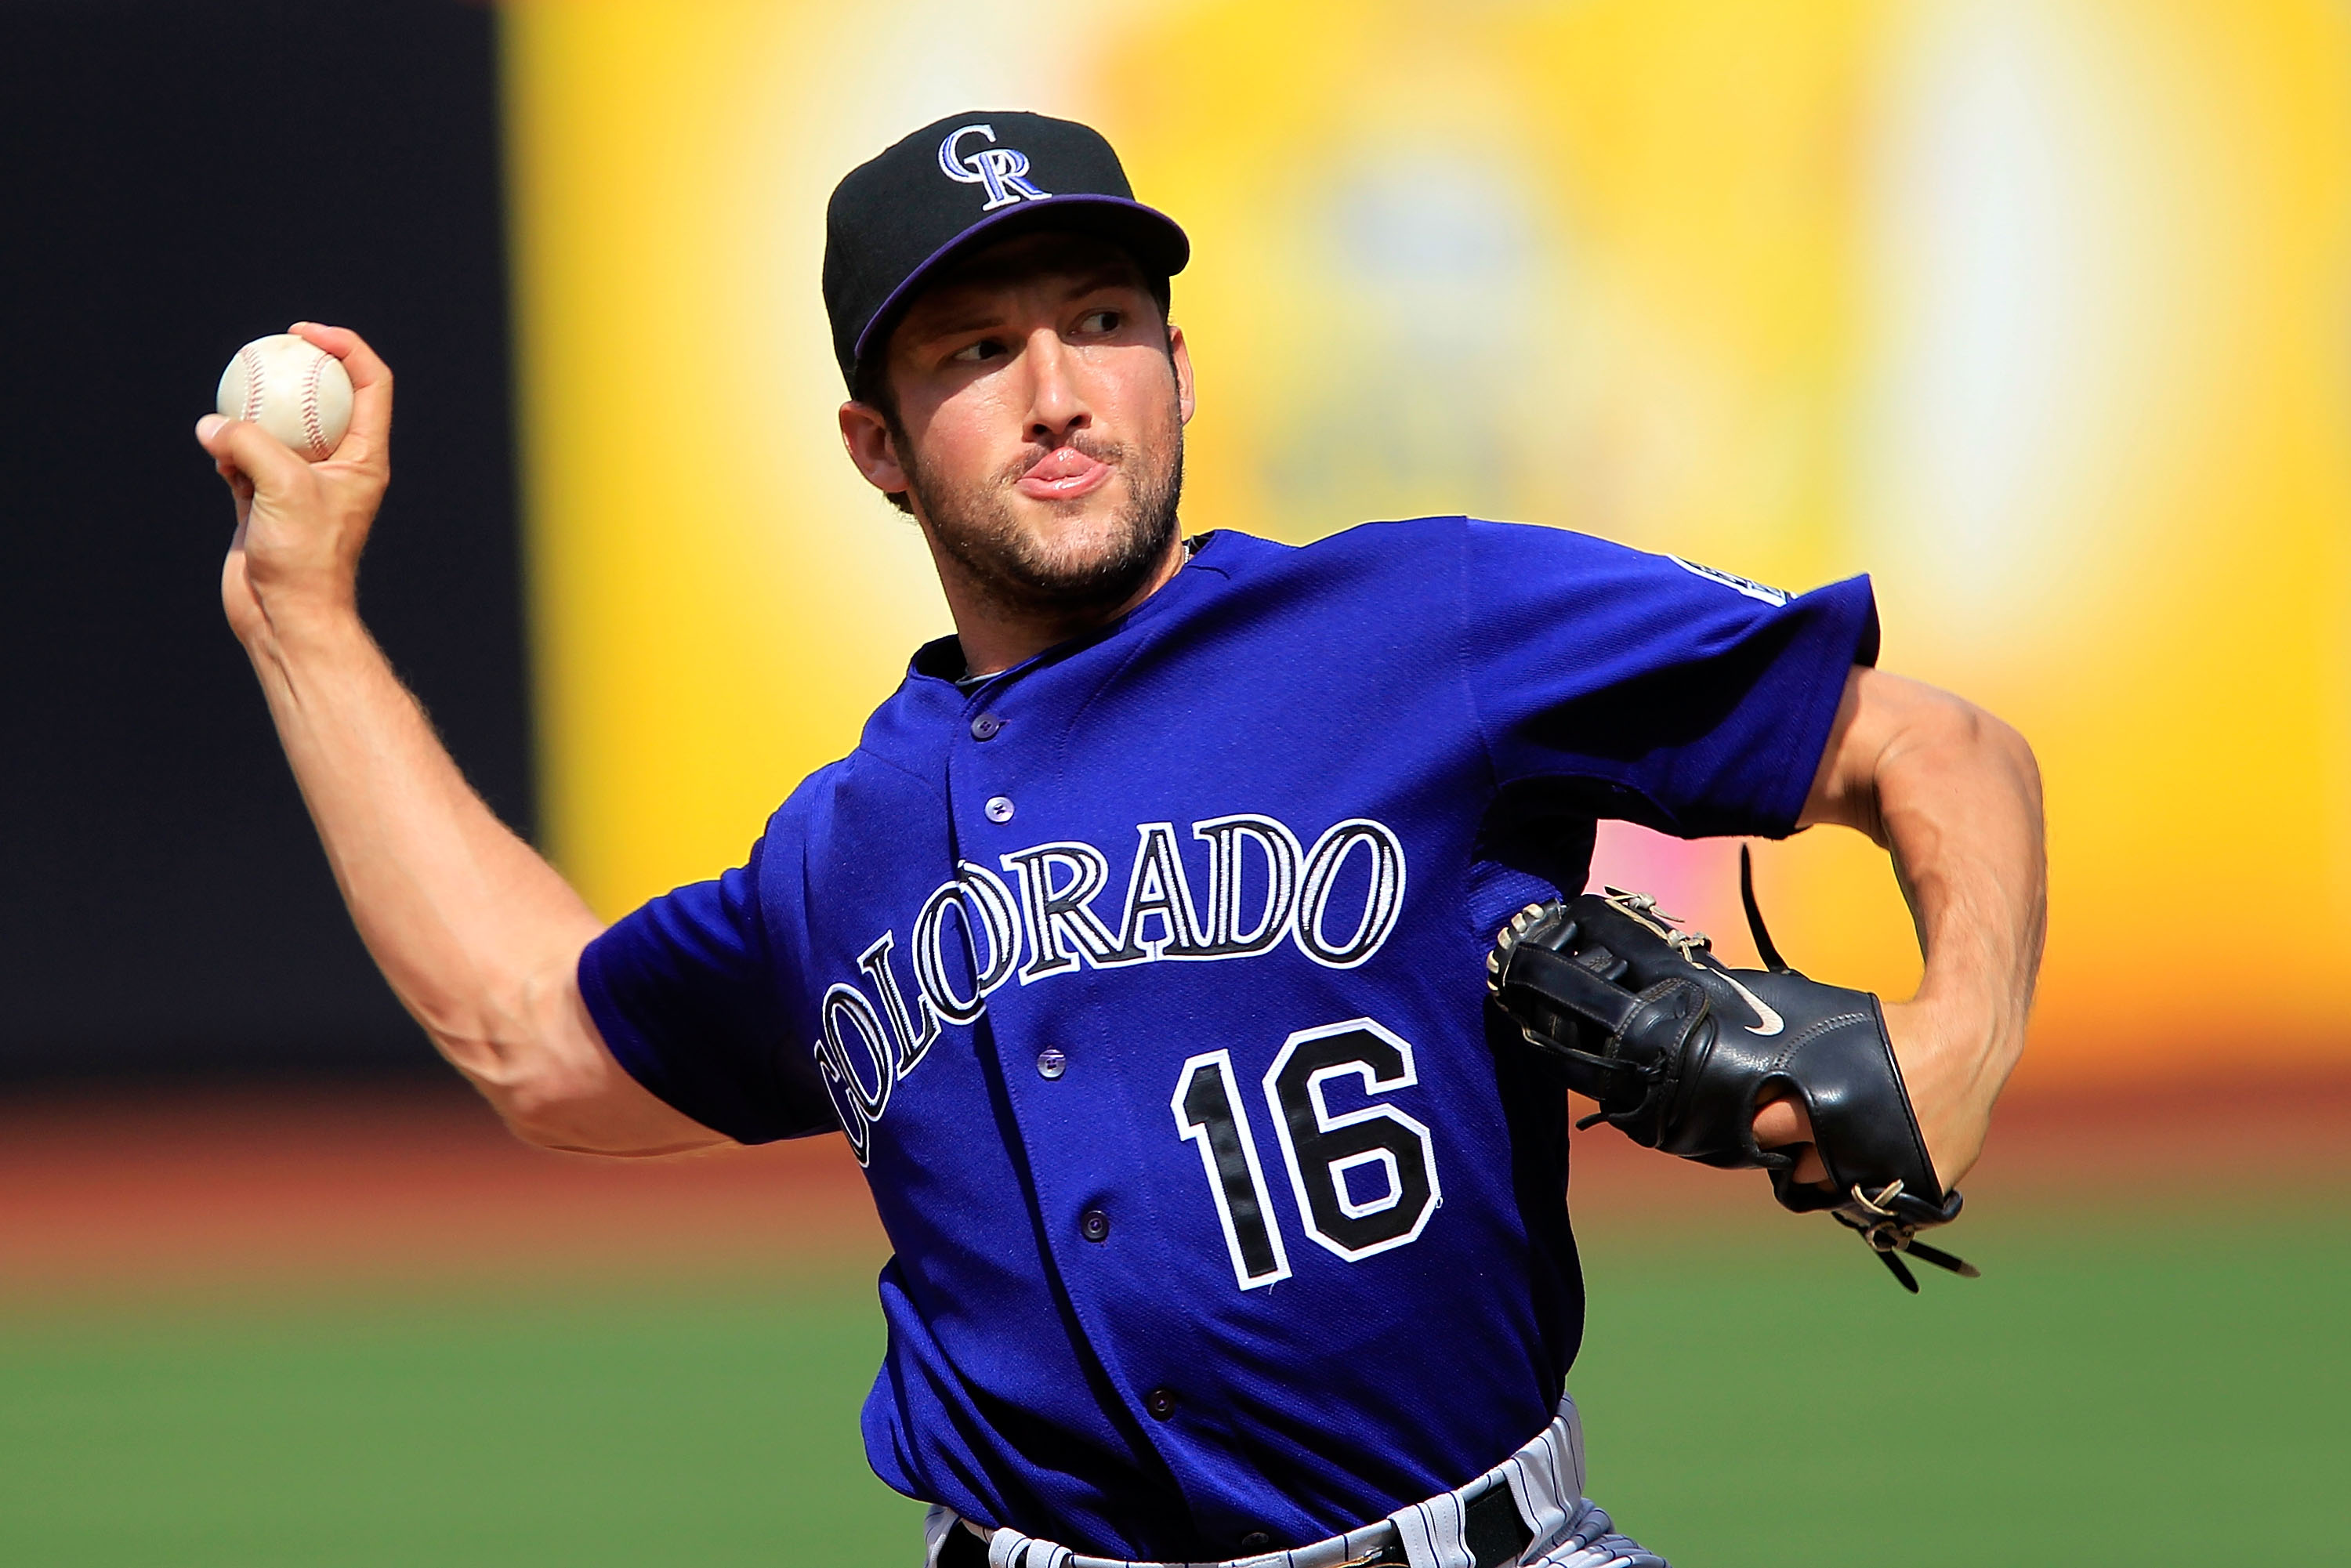 Colorado Rockies closer Huston Street throws a pitch in a rocky outing against the Mets at Citi Field